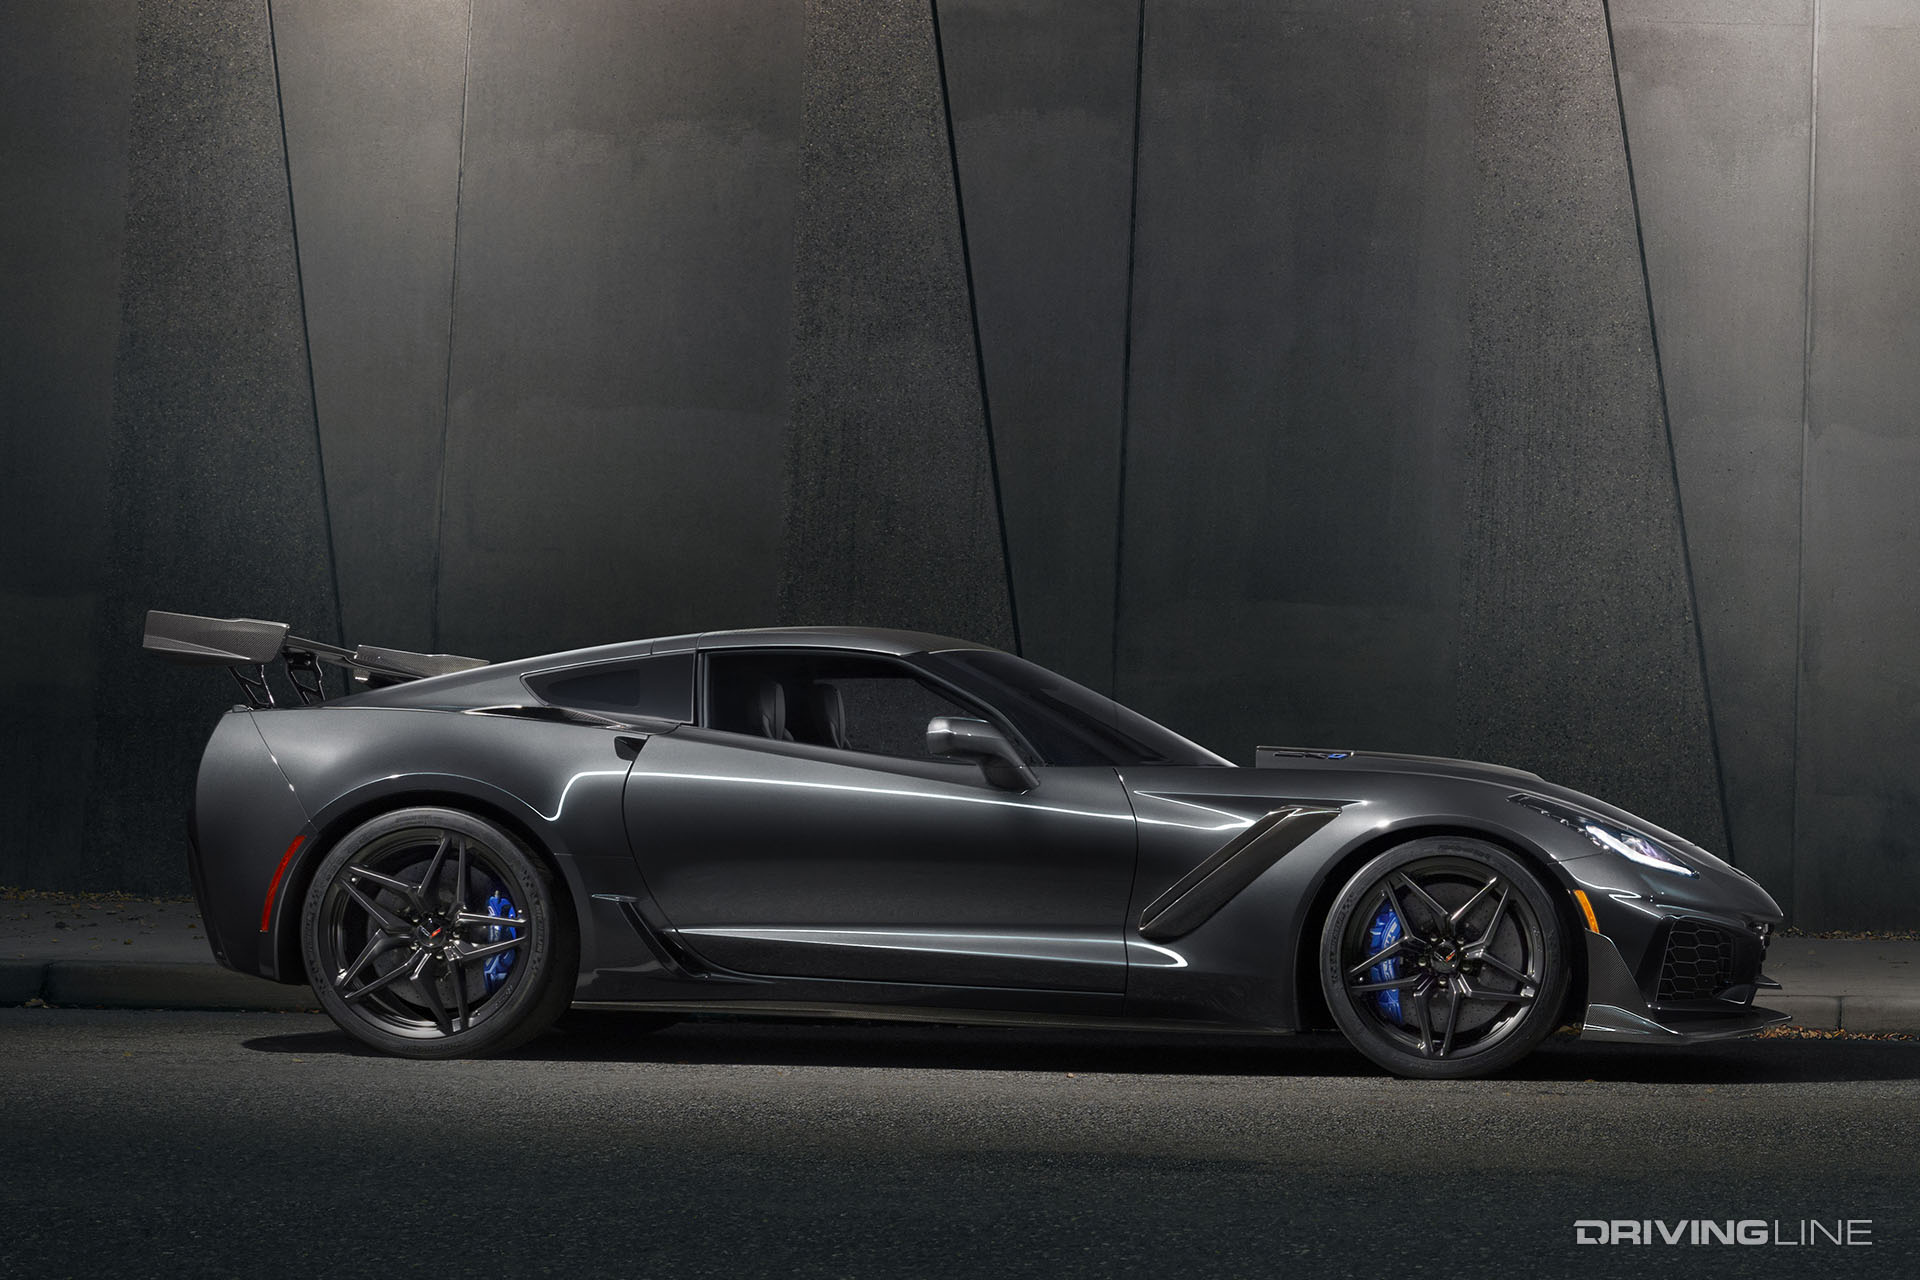 Best 'Vette Ever: The 2019 ZR1 | DrivingLine